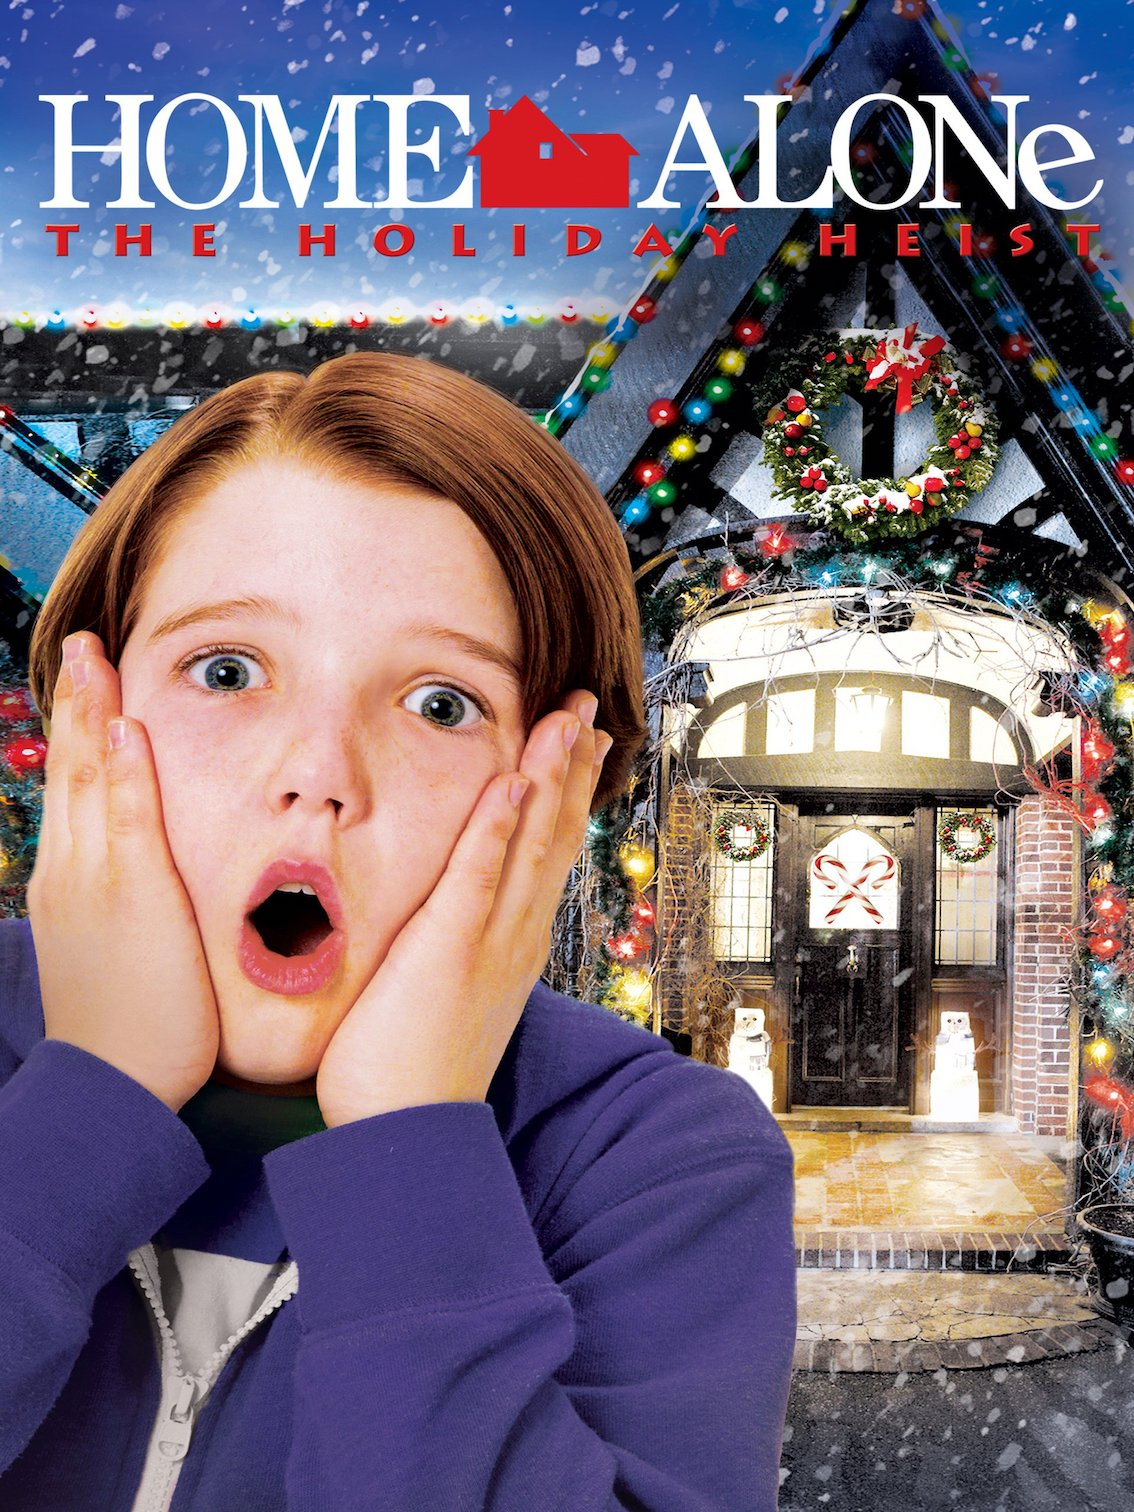 Click image for larger version.  Name:Home Alone 5.jpg Views:271 Size:437.8 KB ID:694